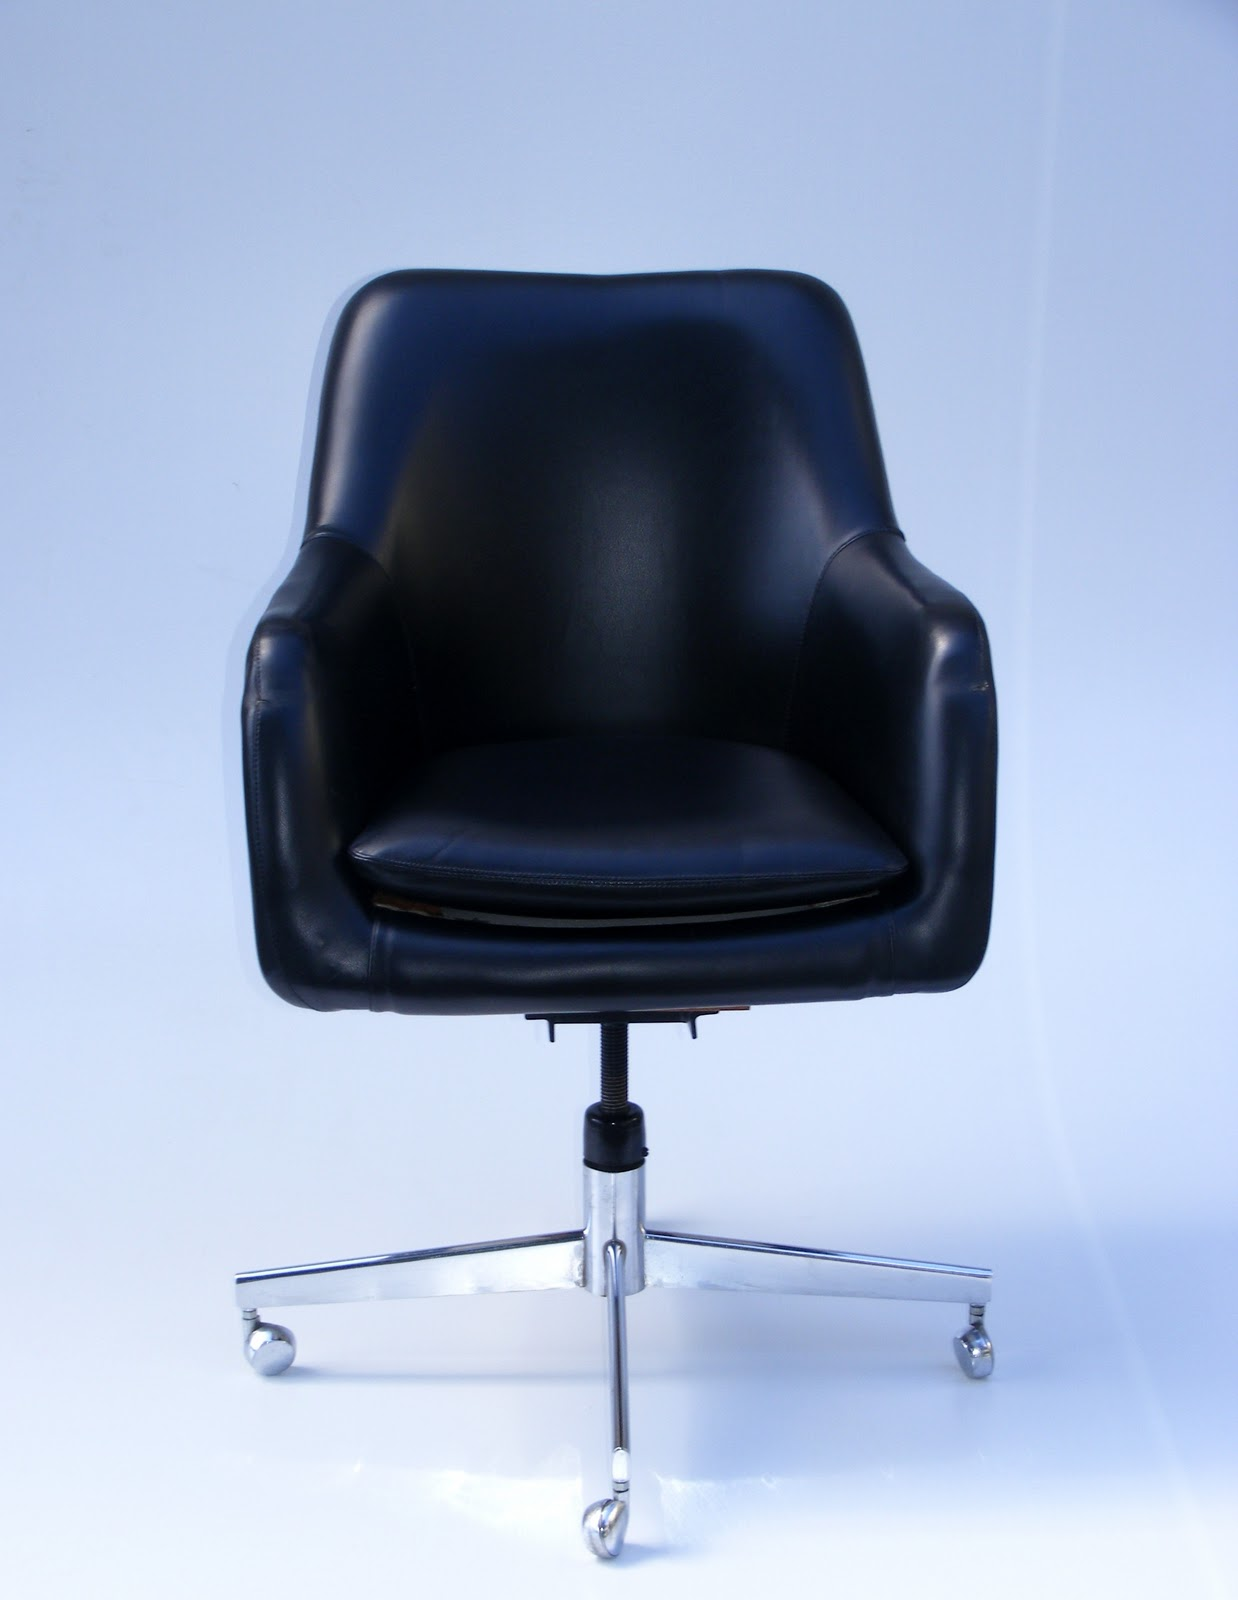 Red Office Chair No Wheels Metal High Vamp Furniture New Stock At This Week